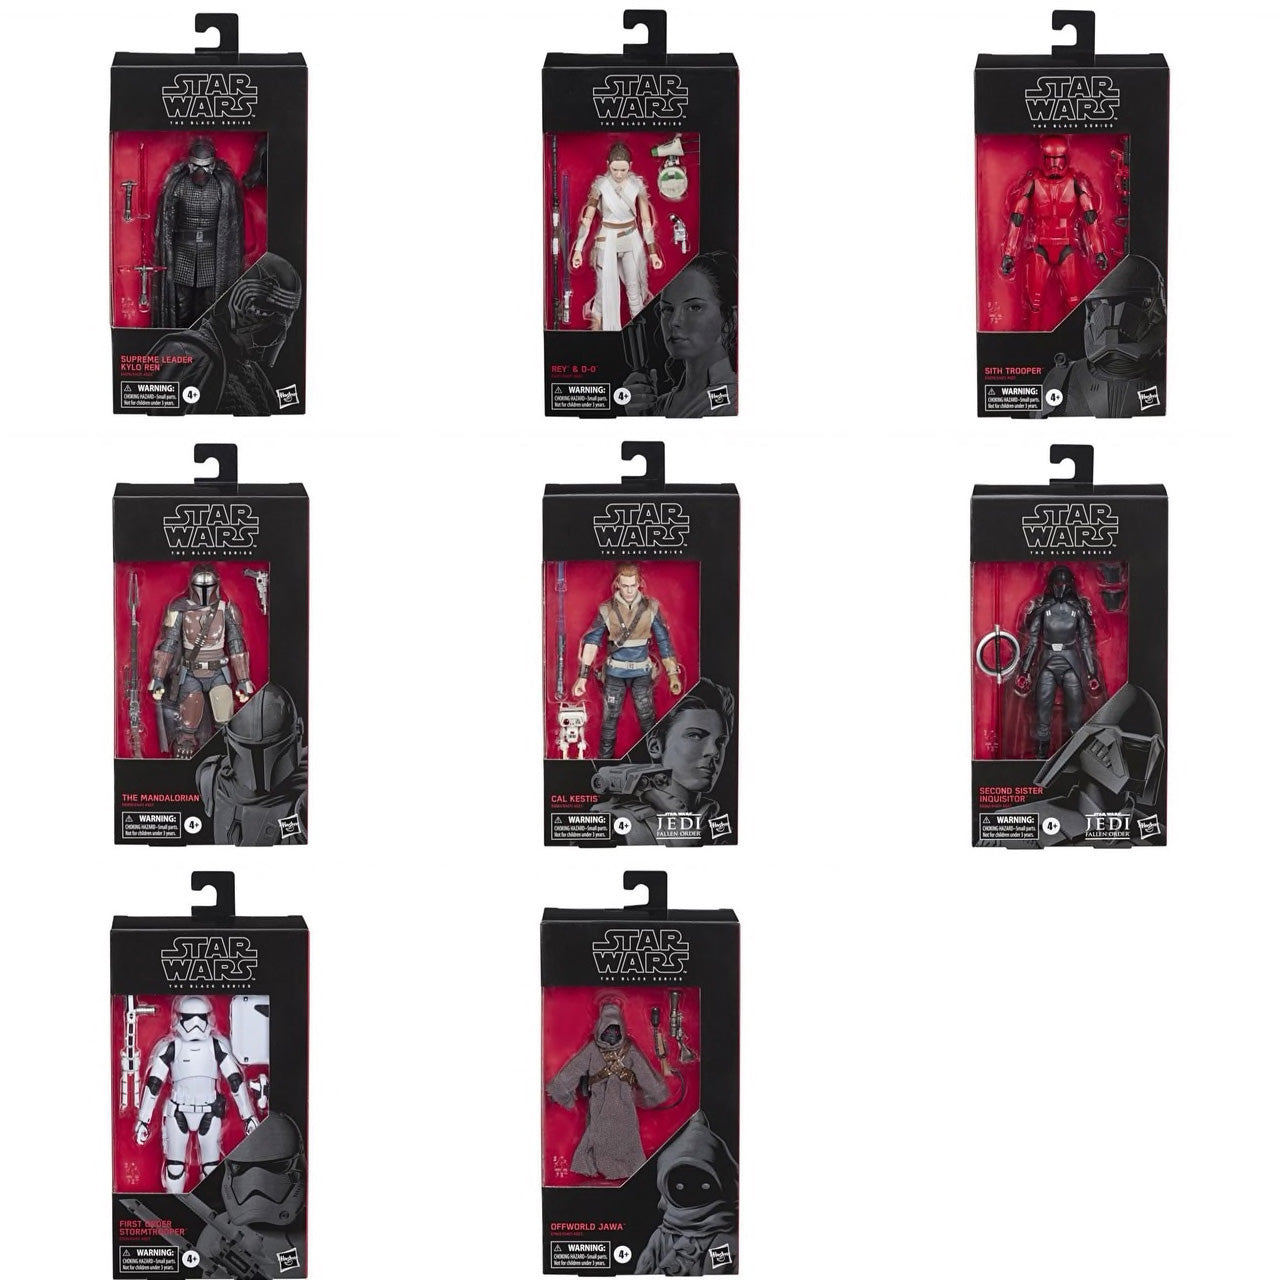 Hasbro - Star Wars: The Black Series - Wave 33 (Set of 8)